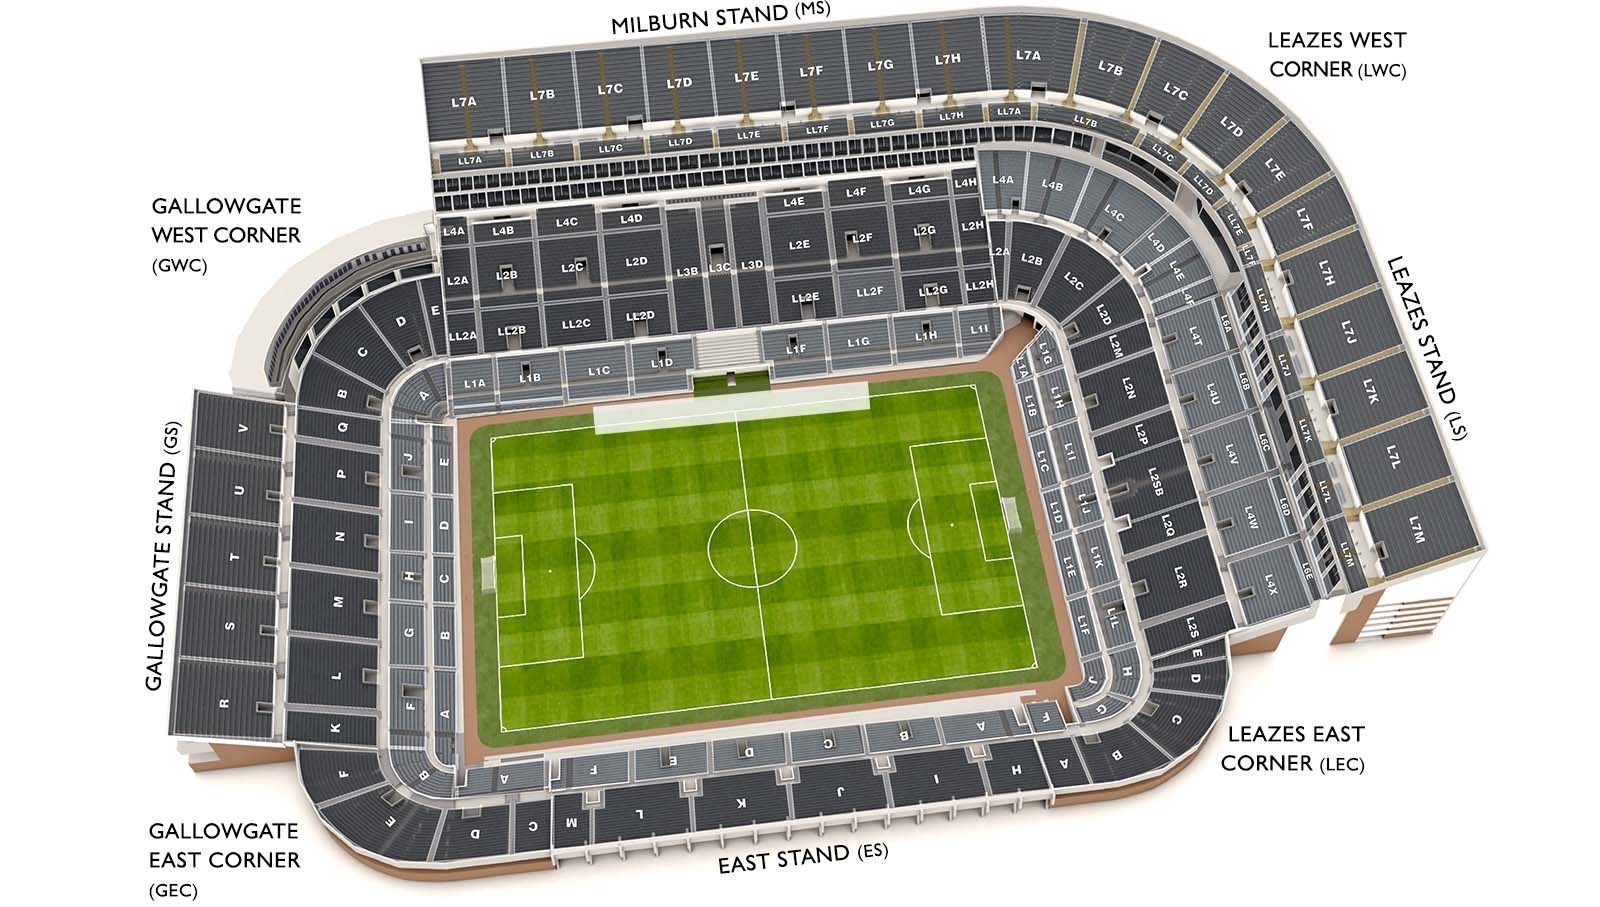 3D stadium plan of St. James' Park